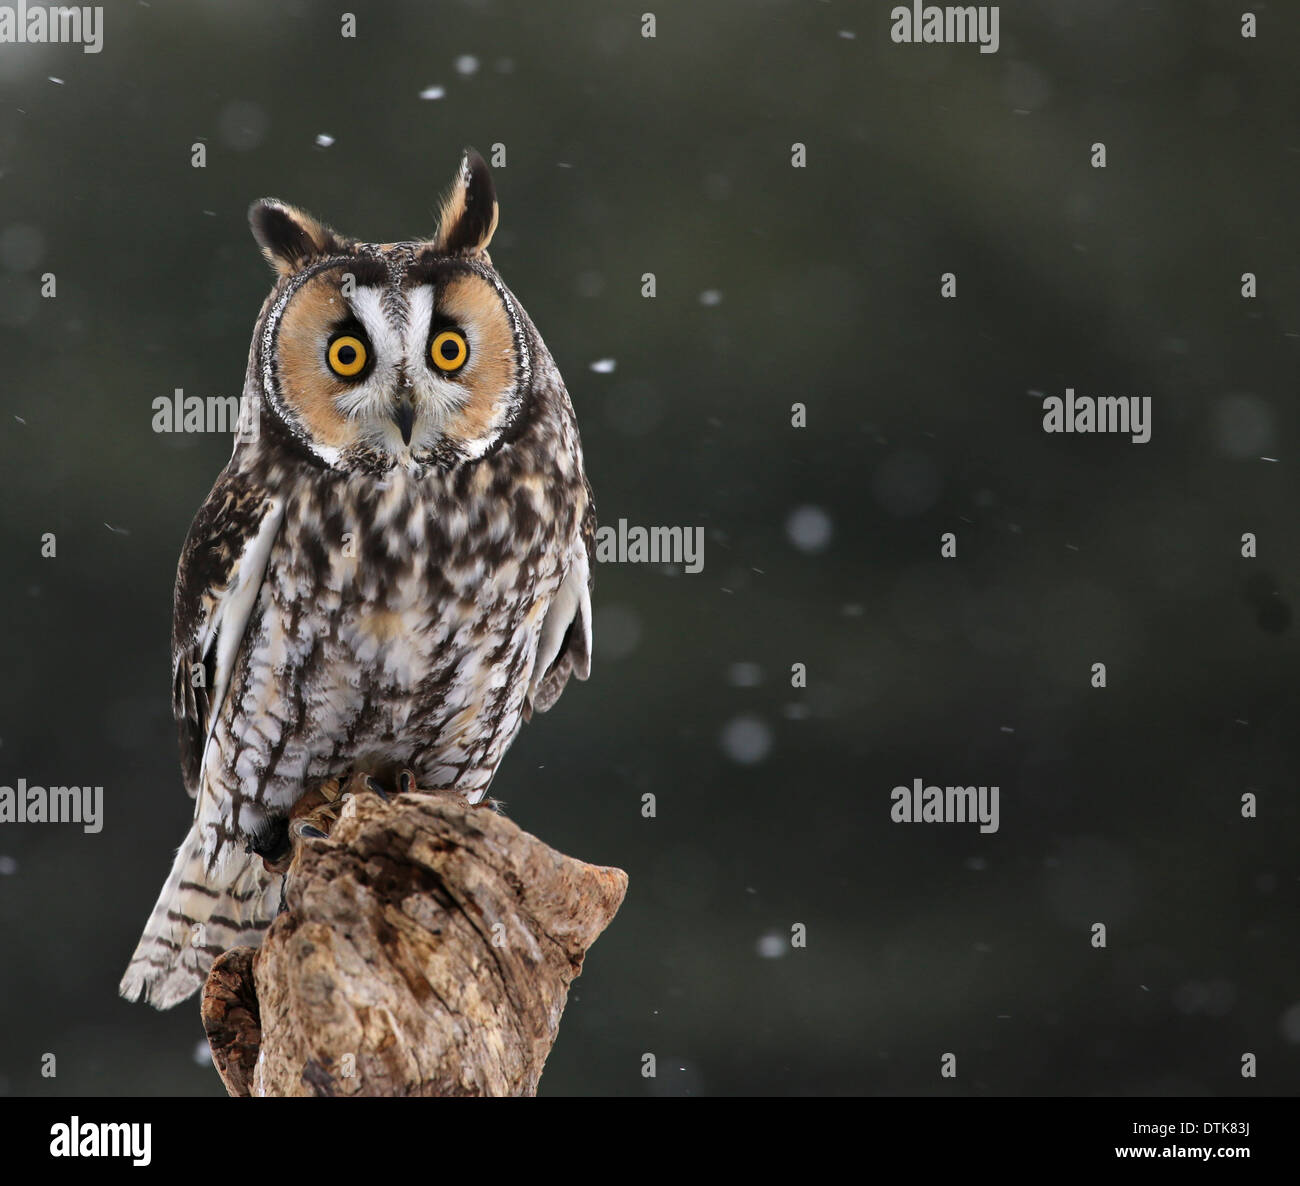 Startled Long-eared Owl Stock Photo